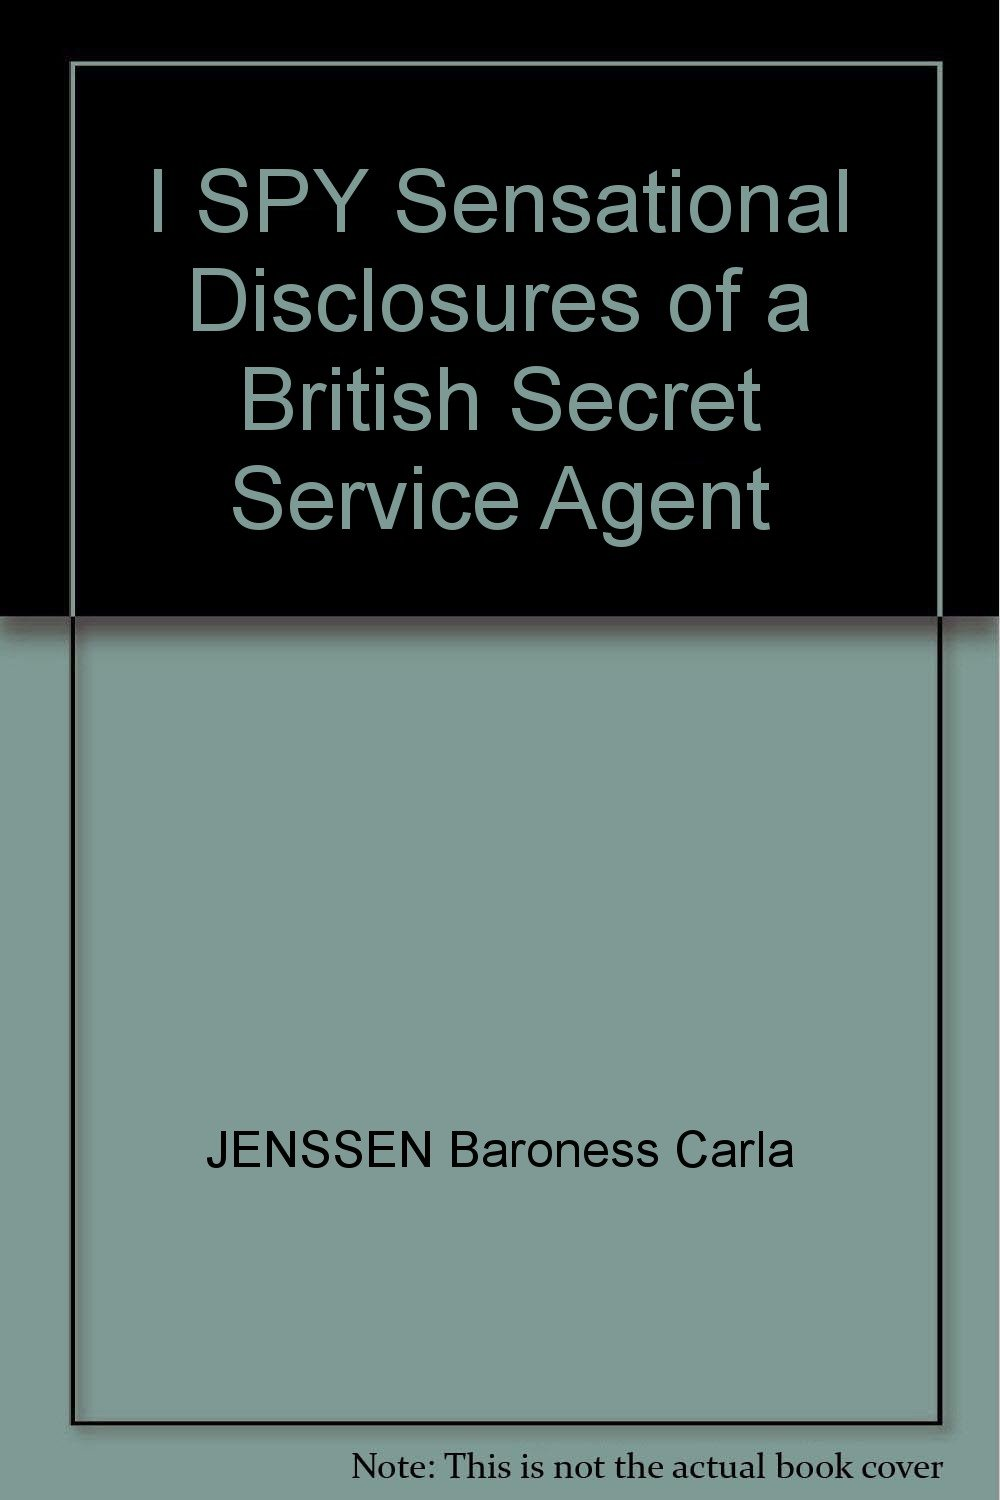 I SPY Sensational Disclosures of a British Secret Service